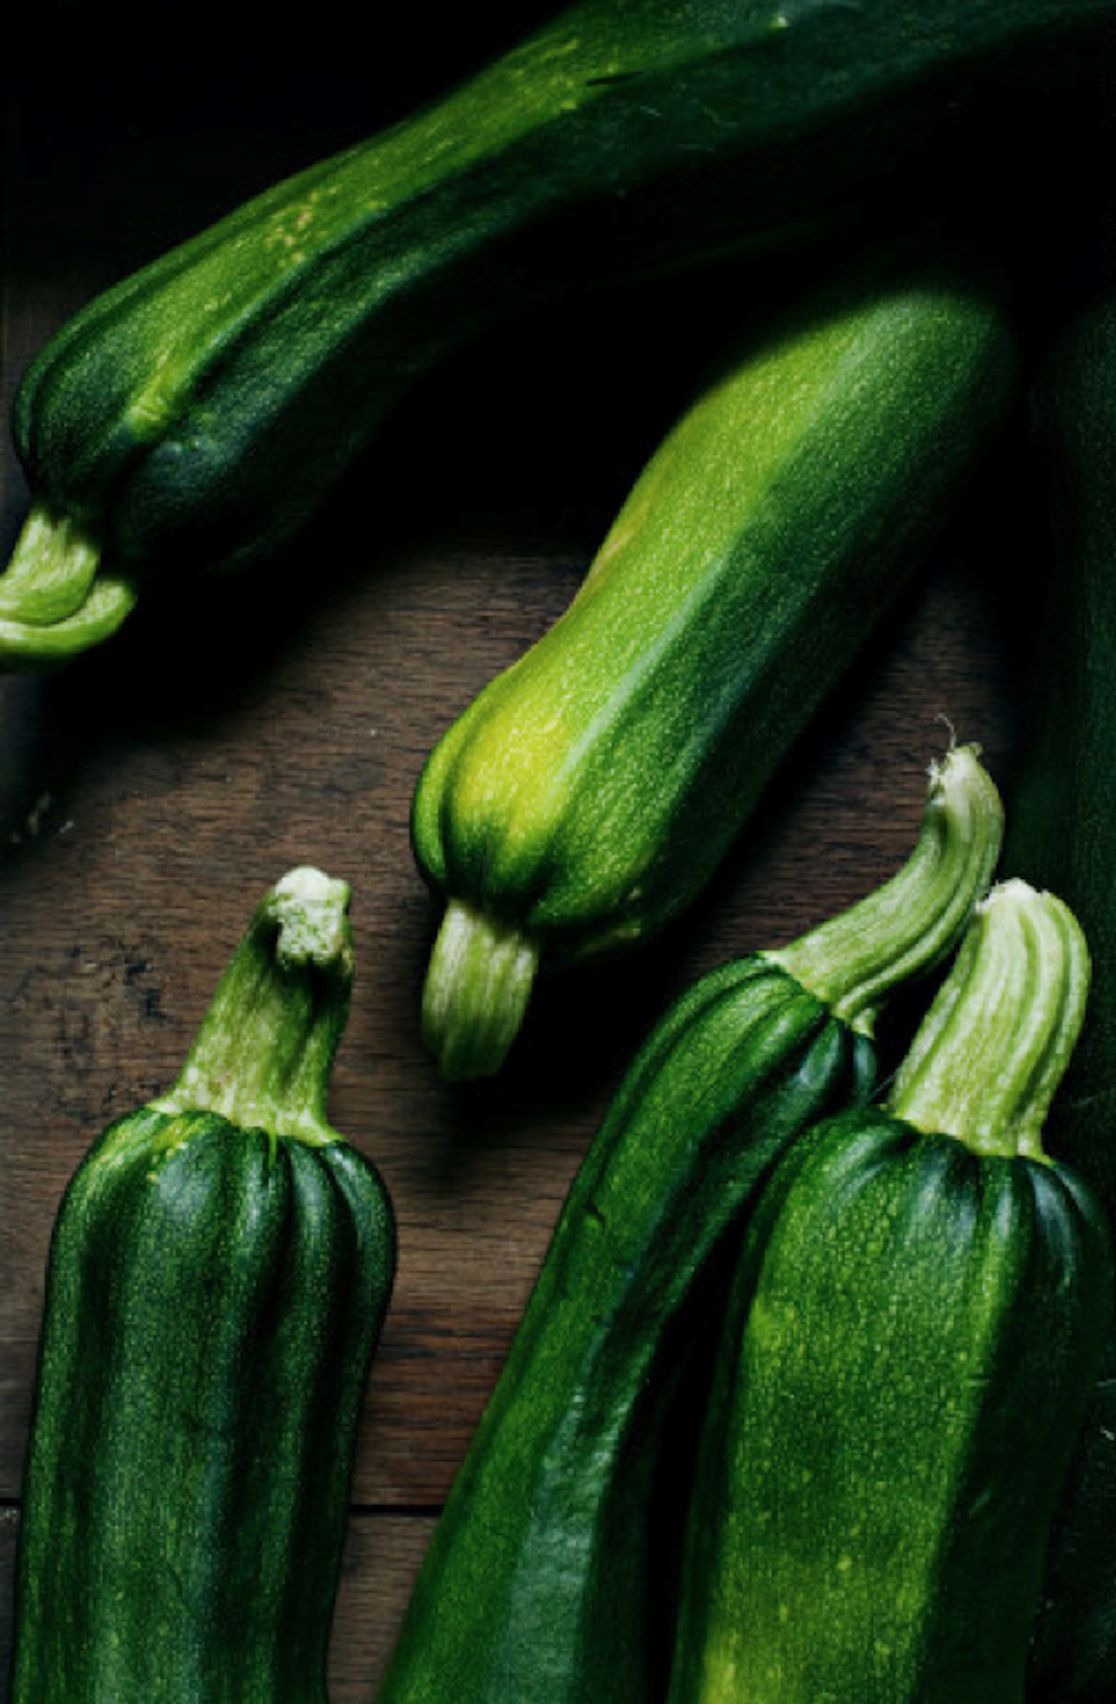 Les courgettes de Bernadette | Courgette, Fruits et légumes, Photo ...